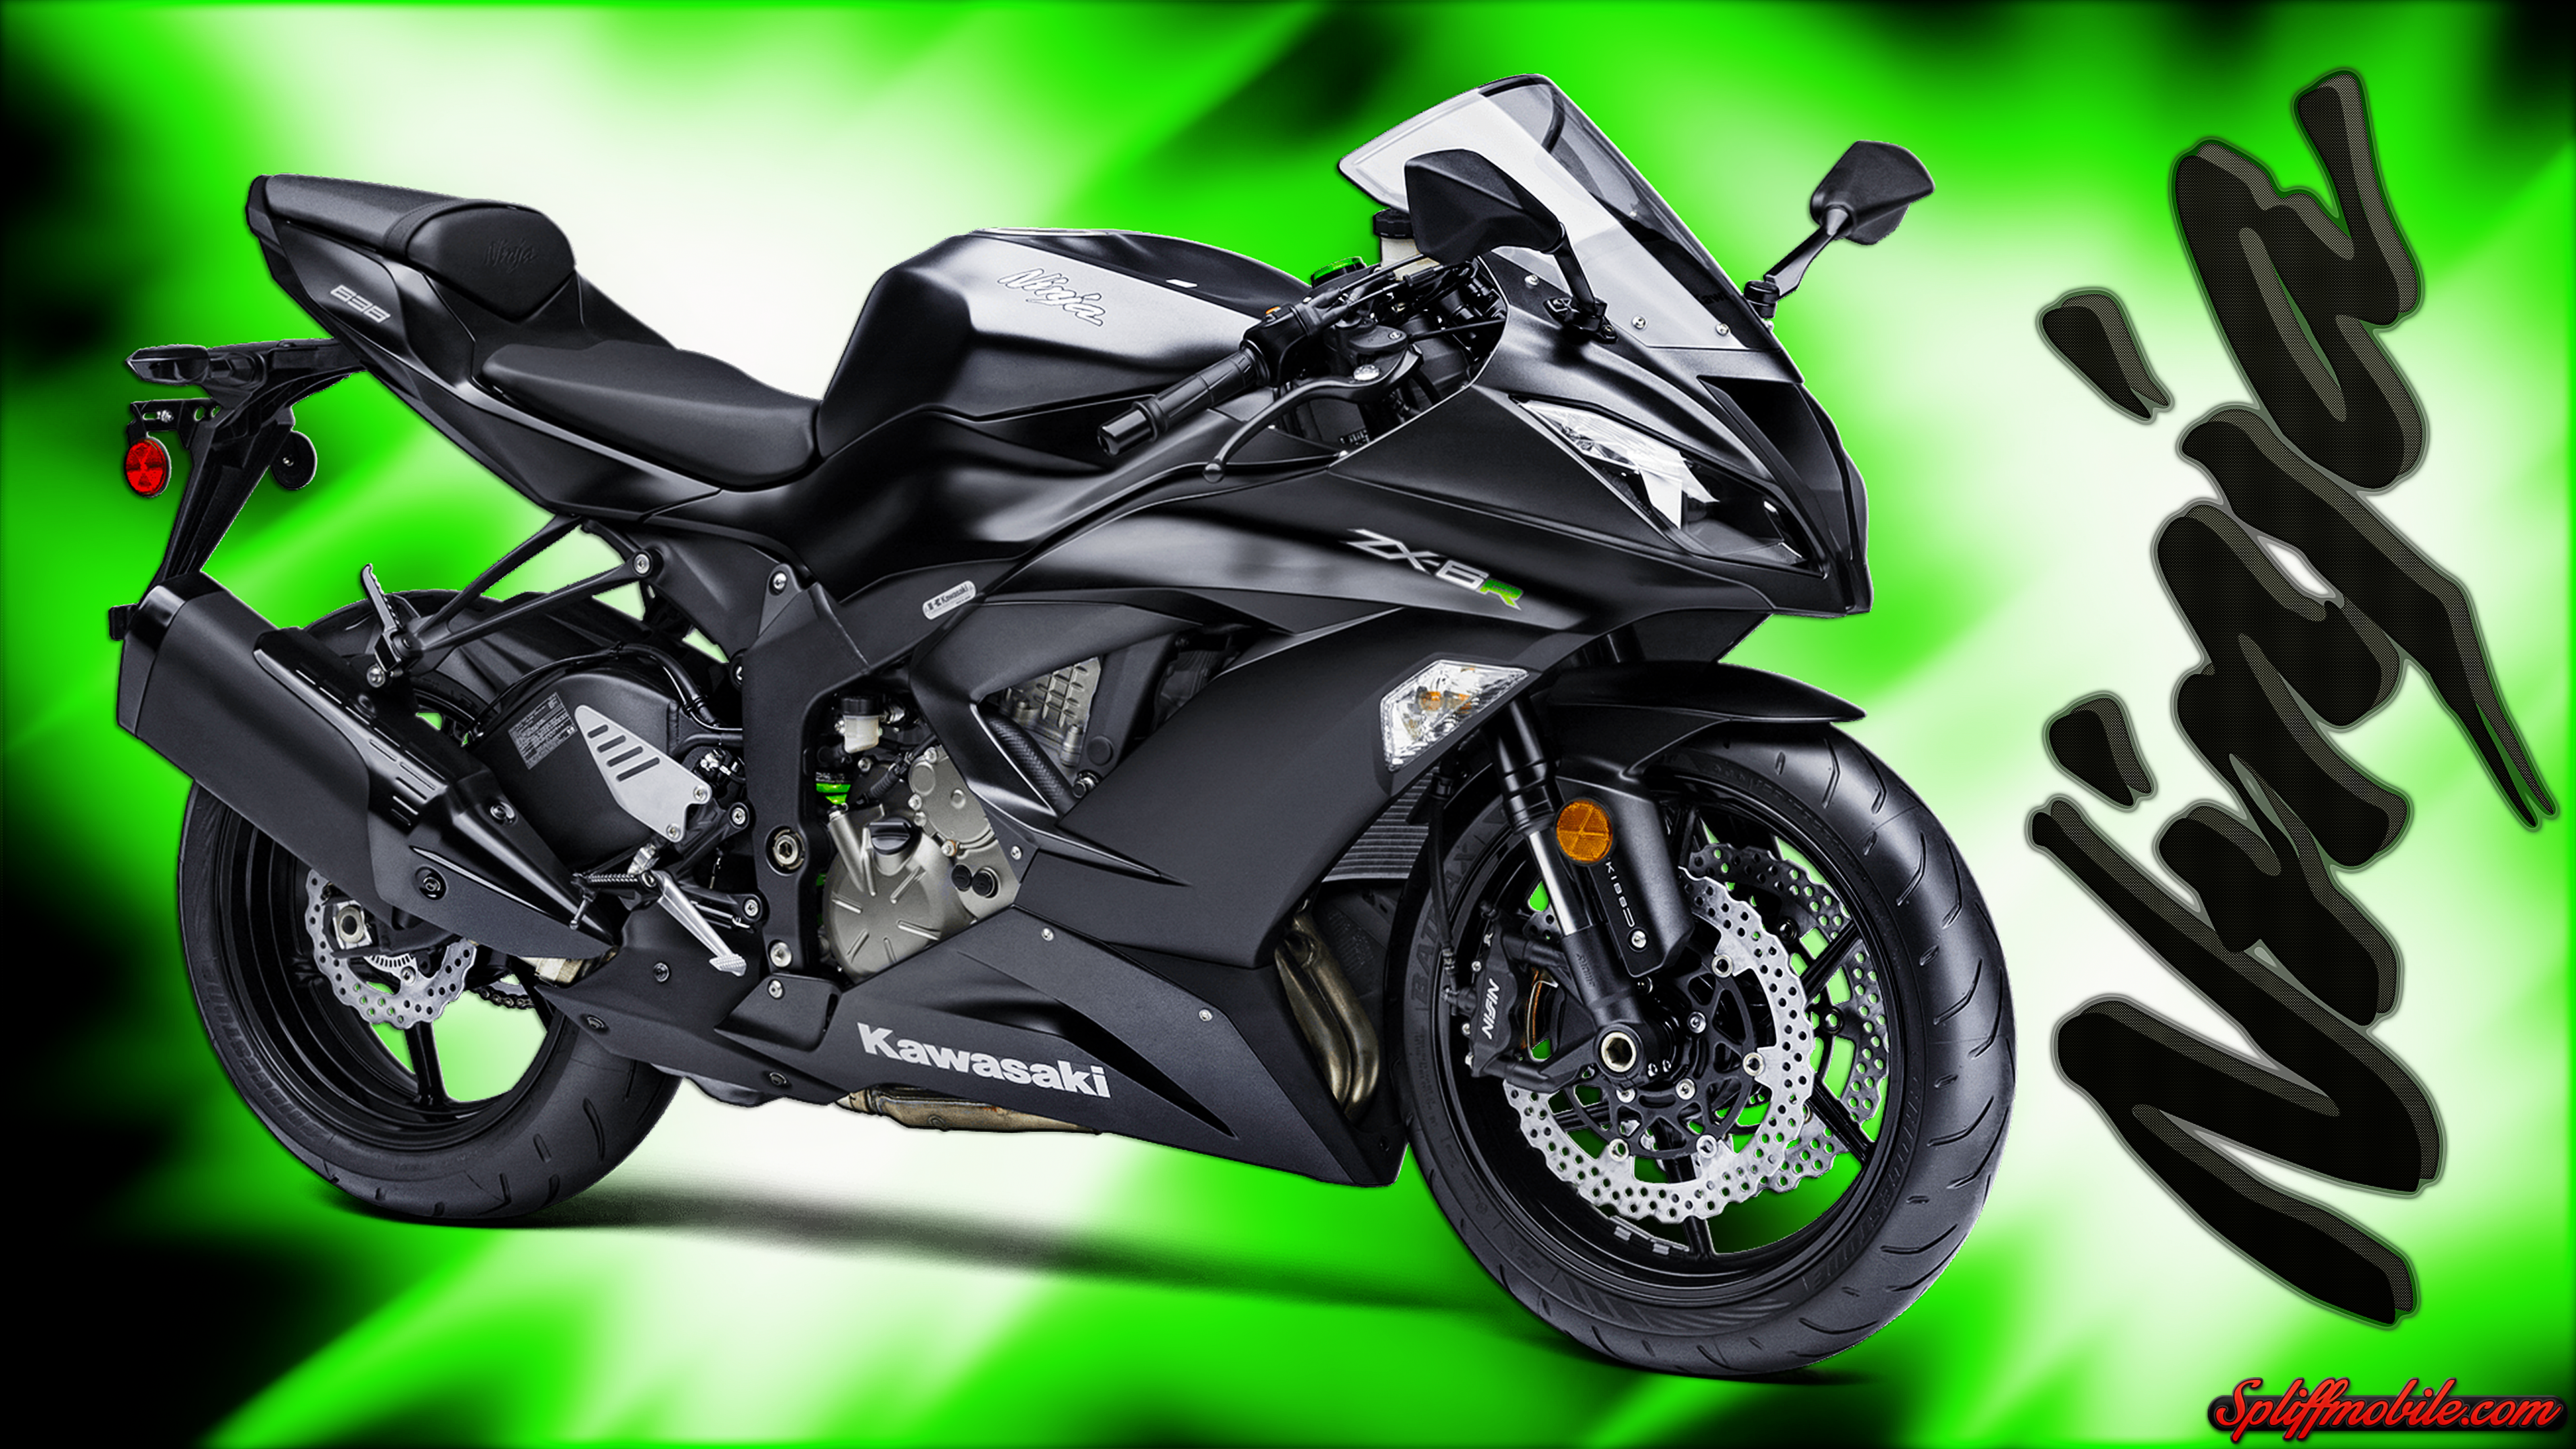 hd kawasaki ninja motorcycle wallpaper